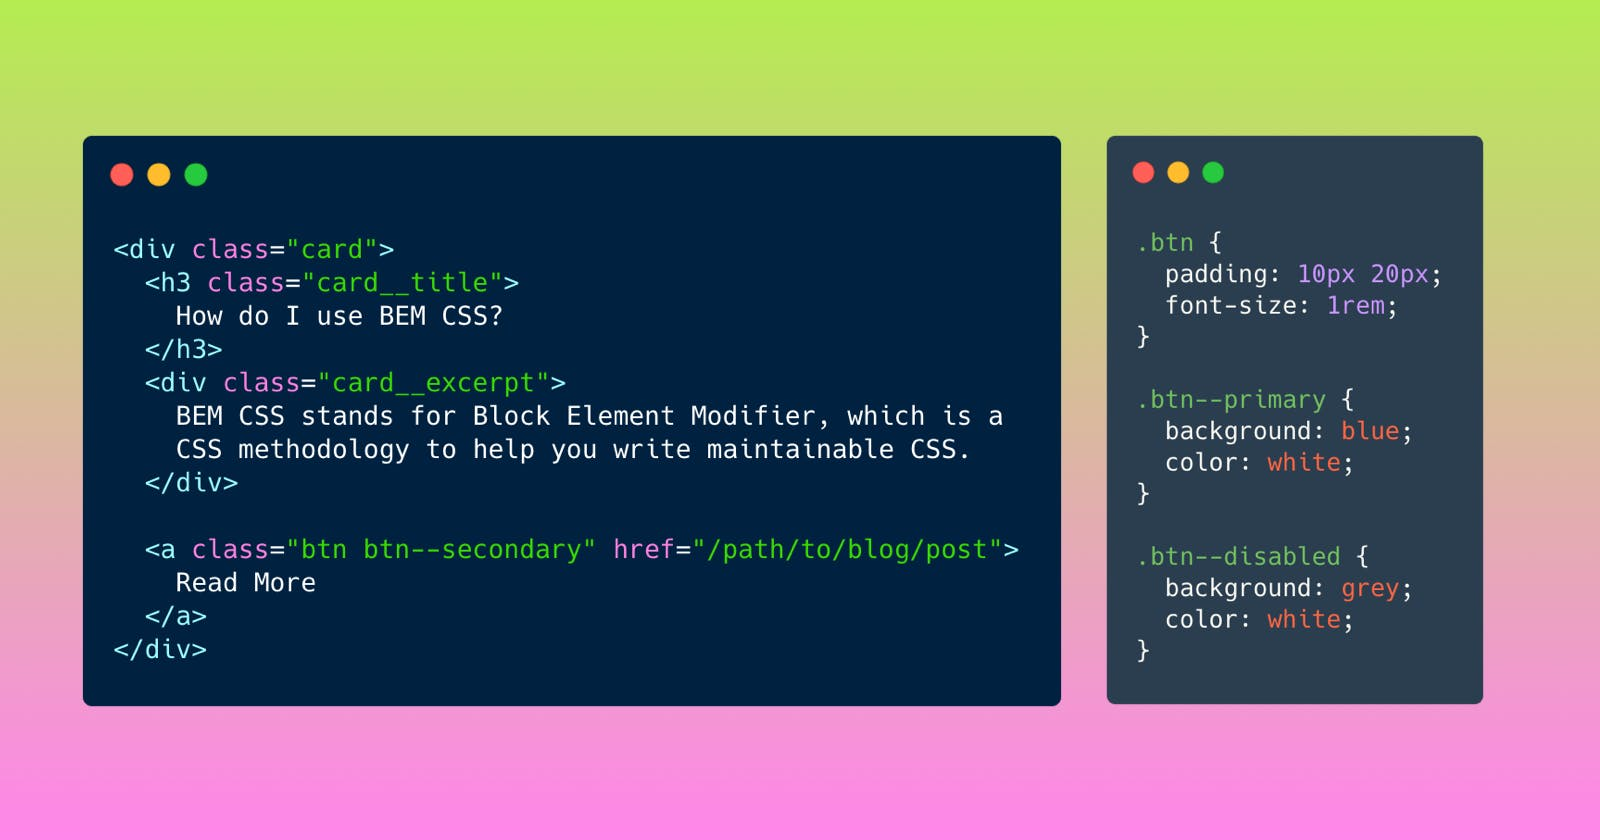 Use BEM for scalable and maintainable CSS